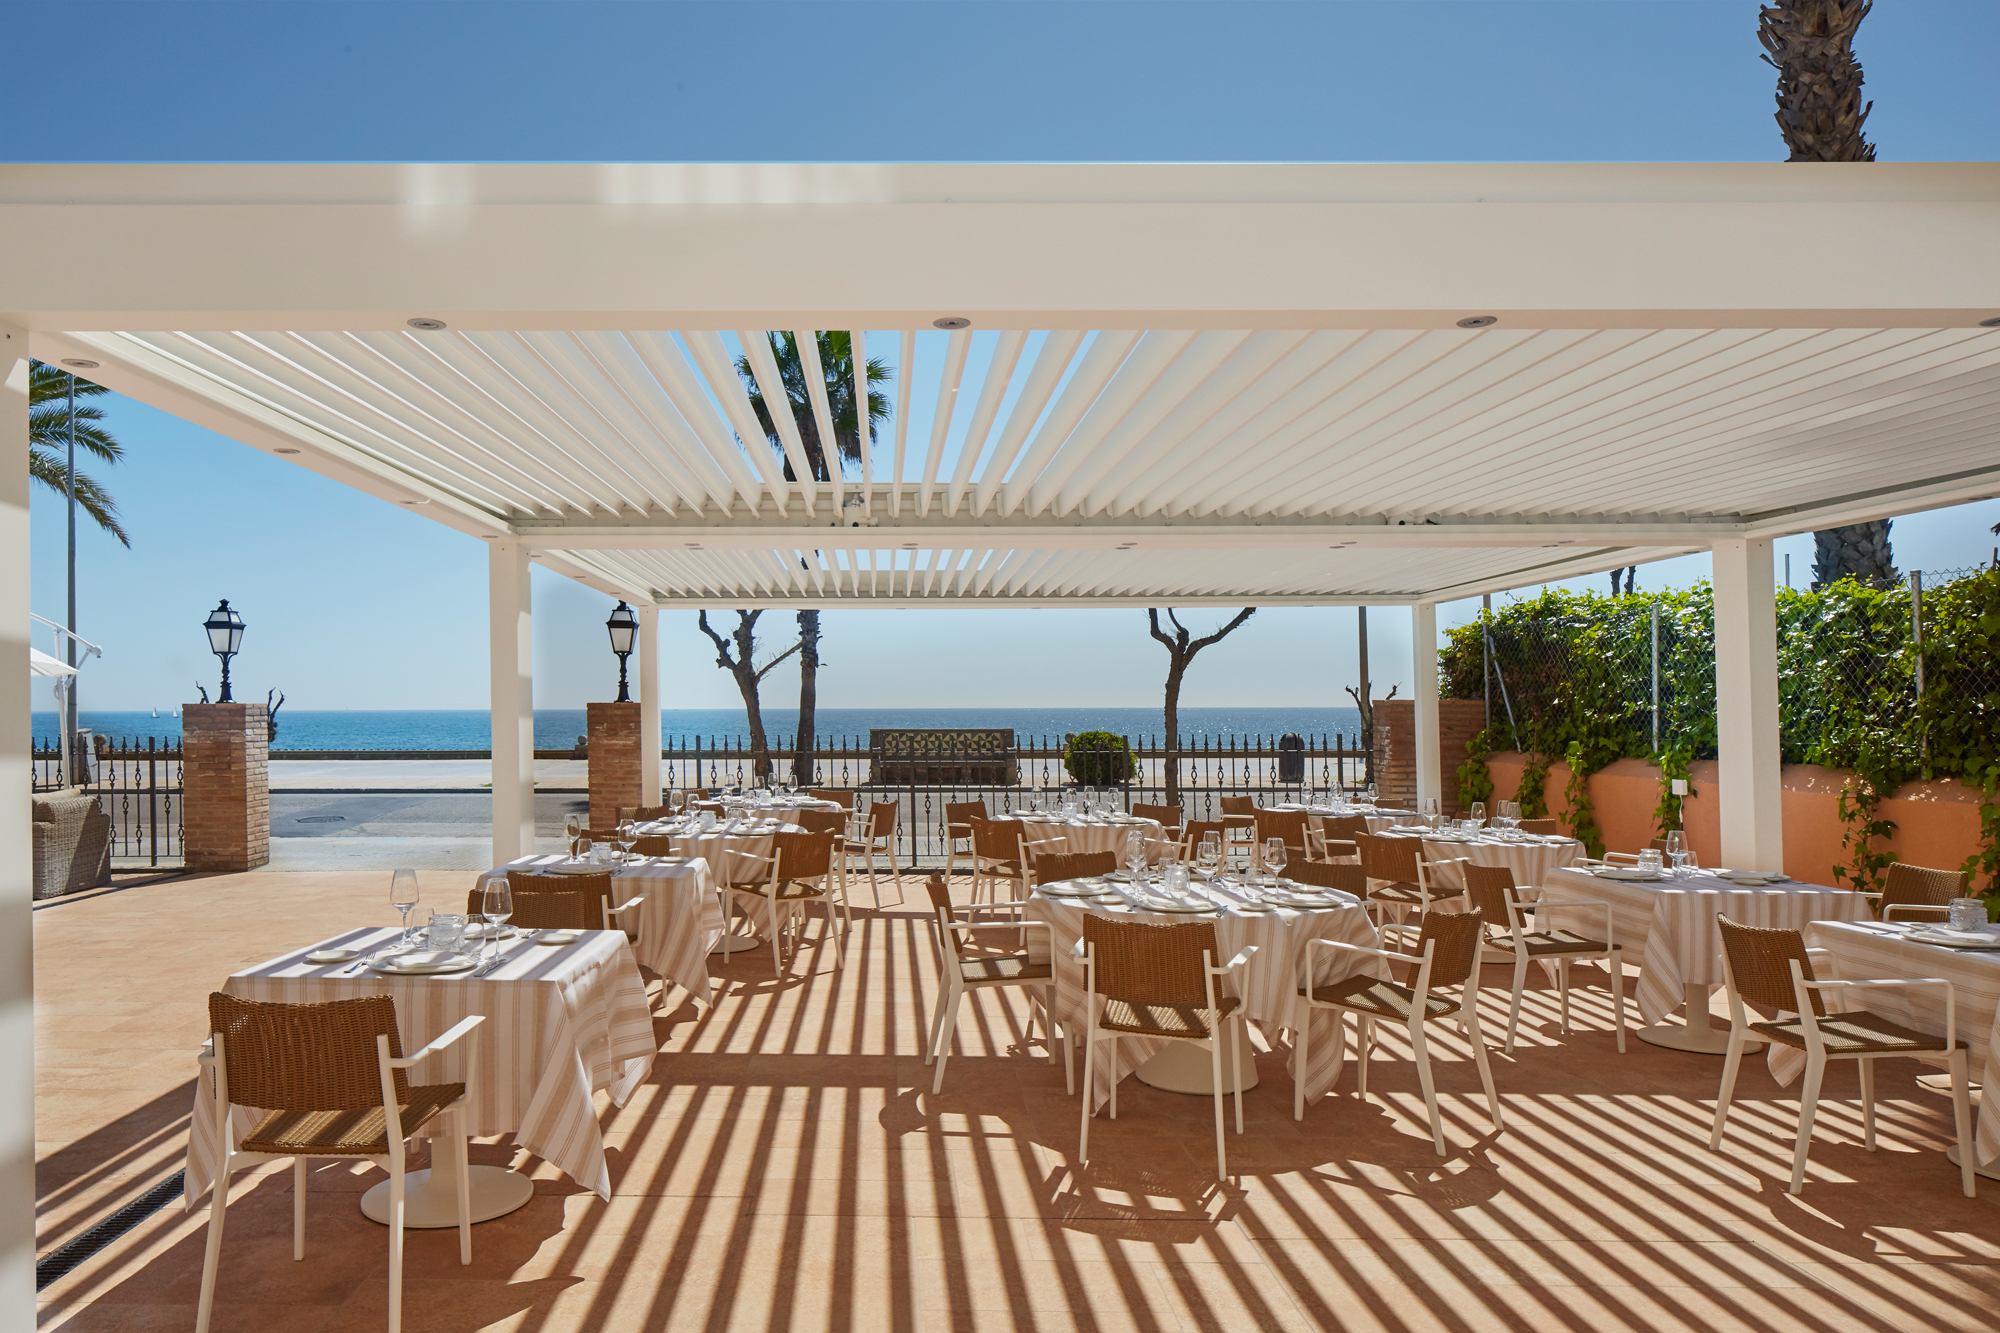 Hotel casa vilella s restaurant at sitges official website - Casa vilella sitges ...